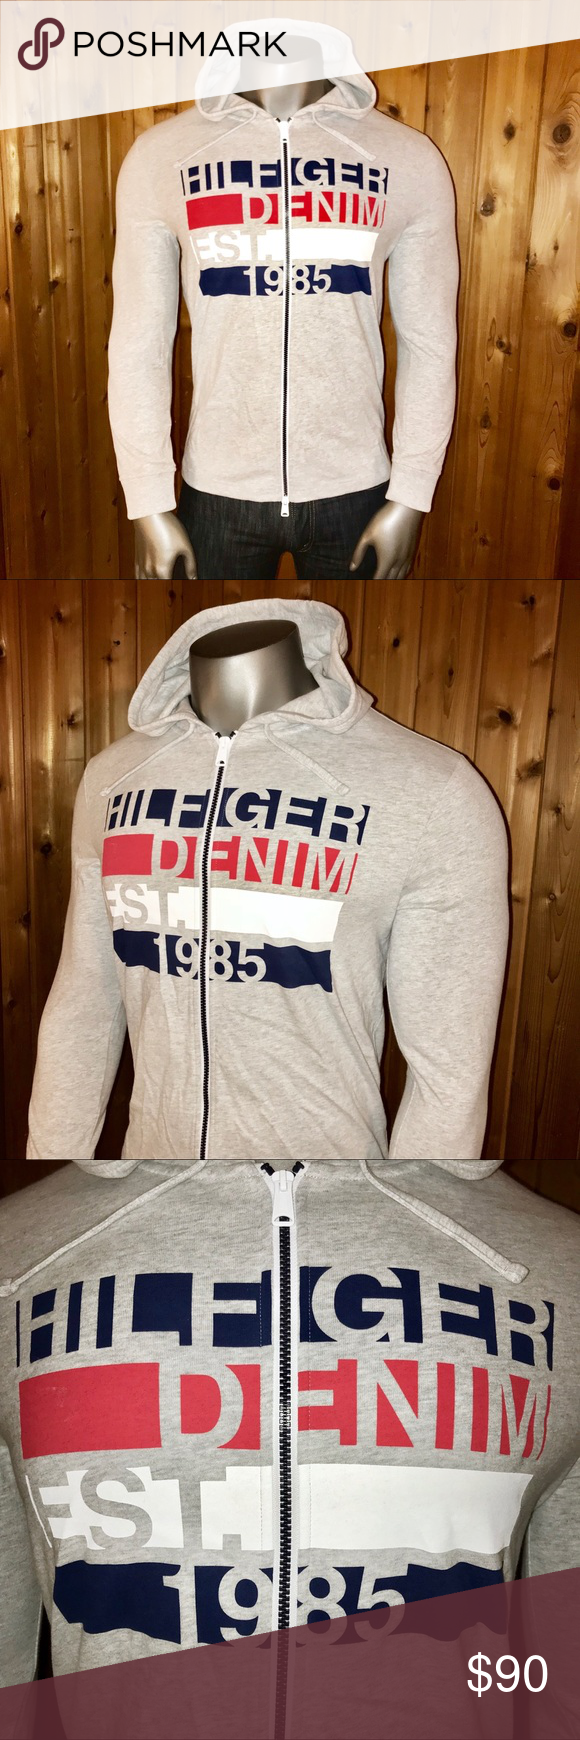 ae3a2bb78ef54 Tommy Hilfiger Denim Men's Classic Hoodie Brand New With Tags! Size: U.S.